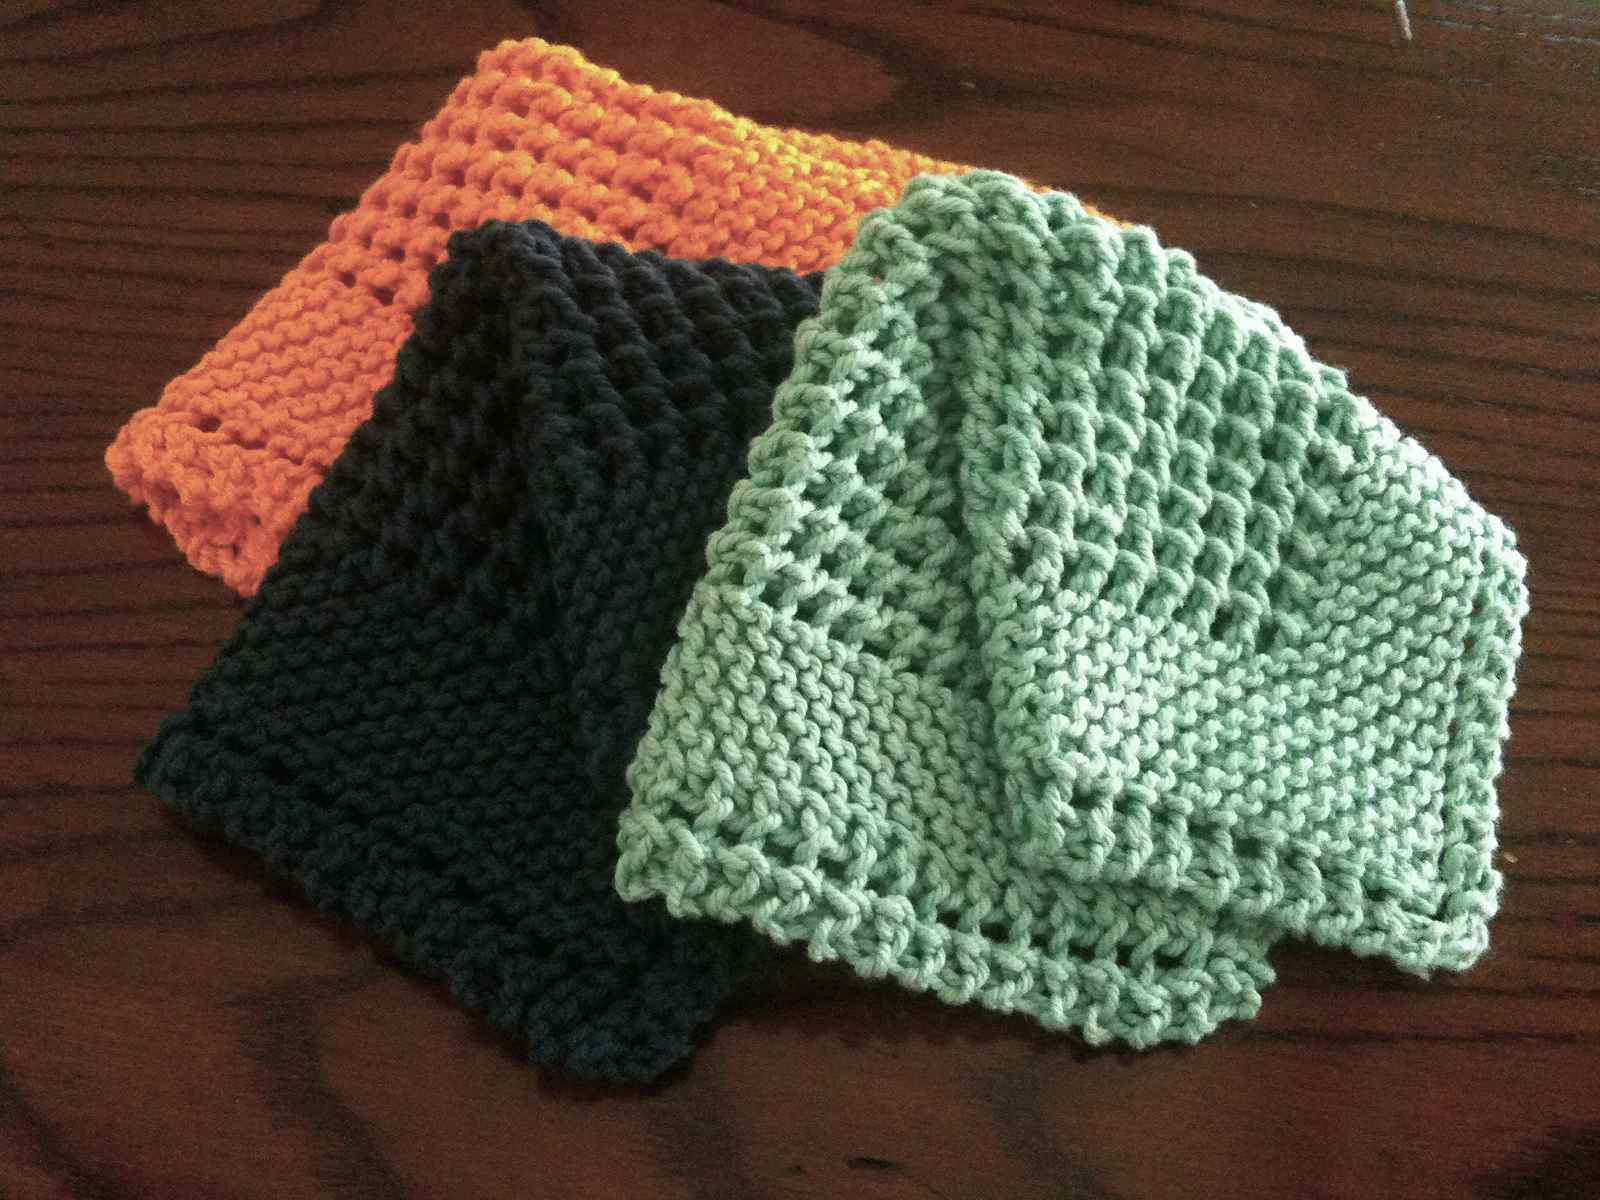 Free Knitted Dishcloth Pattern 10 Knit Dishcloth Patterns For Beginners